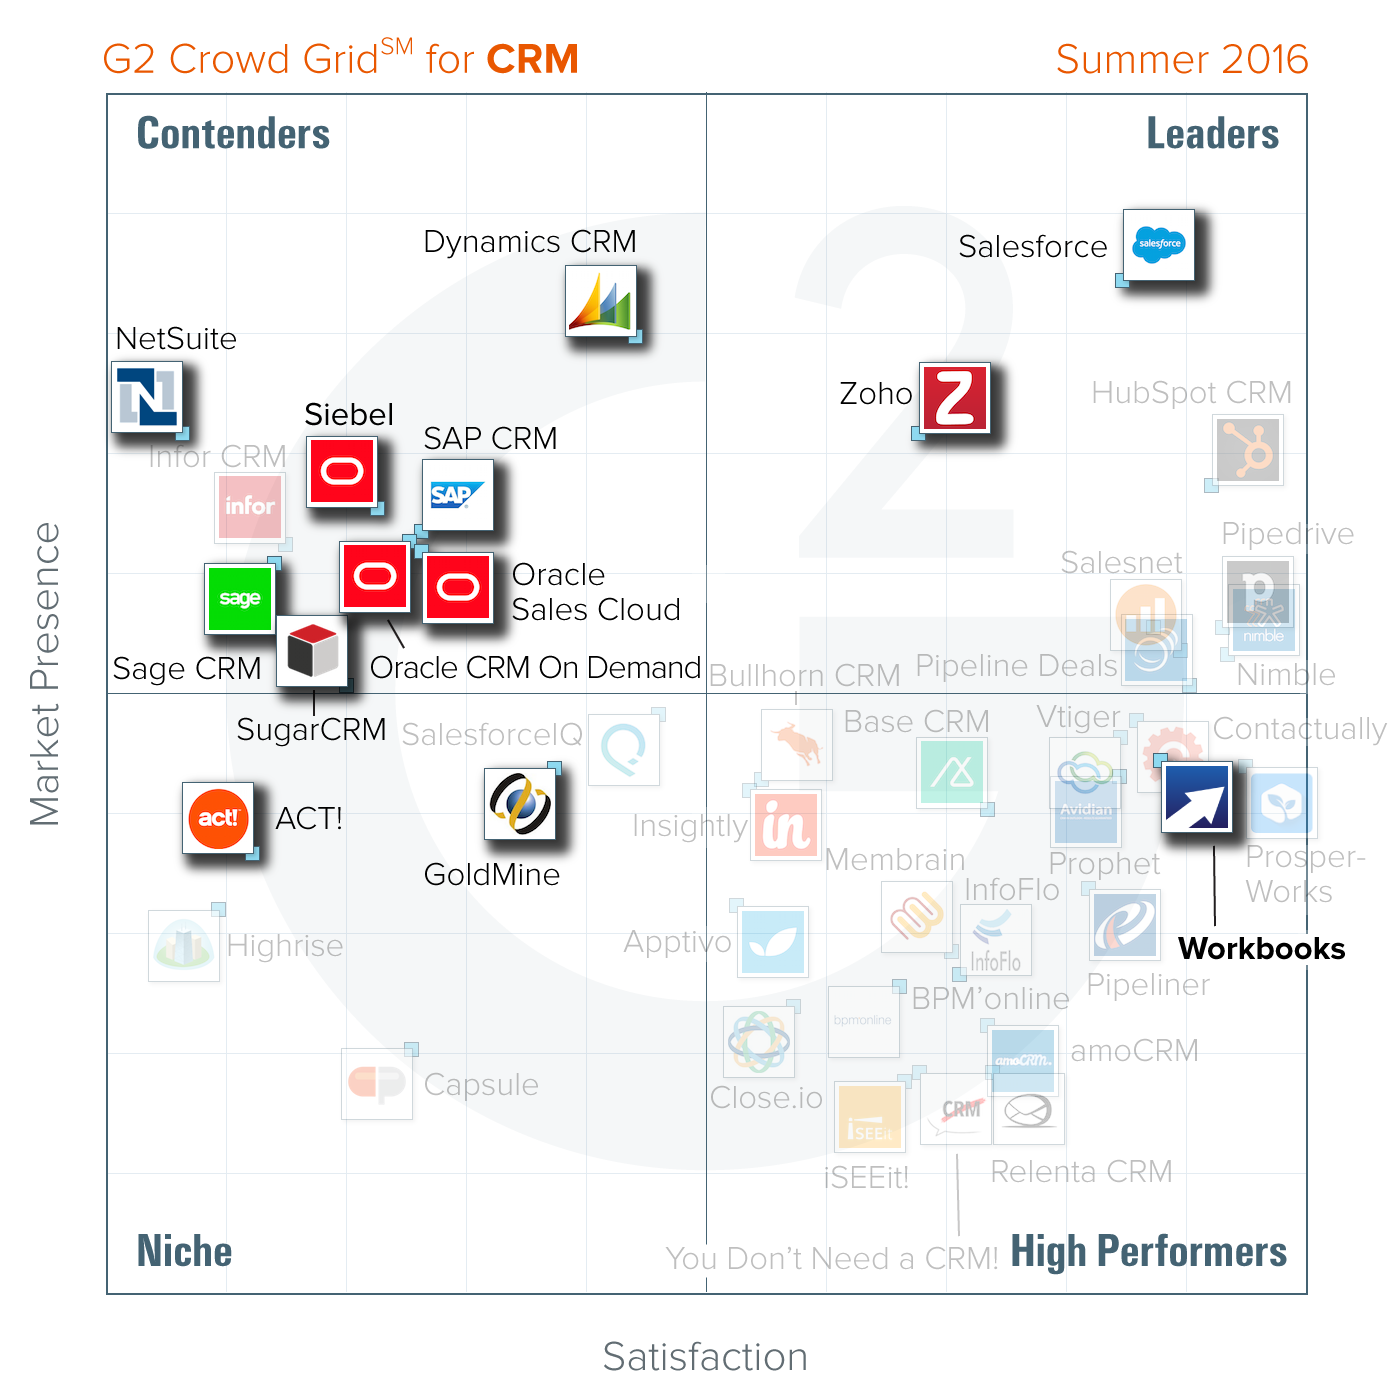 g2 crowd image Workbooks   Scoring above Salesforce, MS Dynamics, Zoho & Goldmine